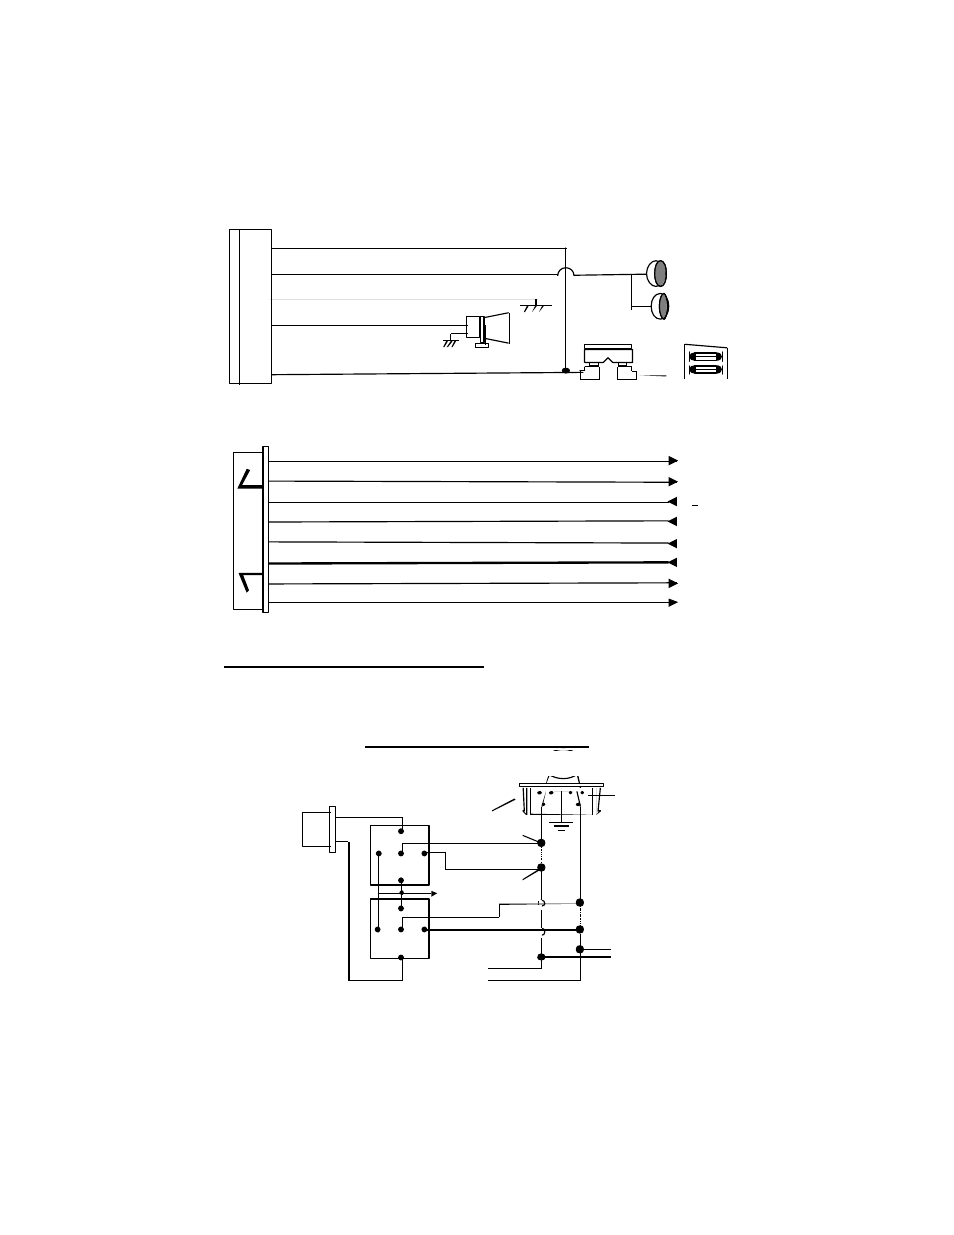 hight resolution of door lock diagrams h1 main 5 pin wire harness auto page rf 350 user manual page 3 16